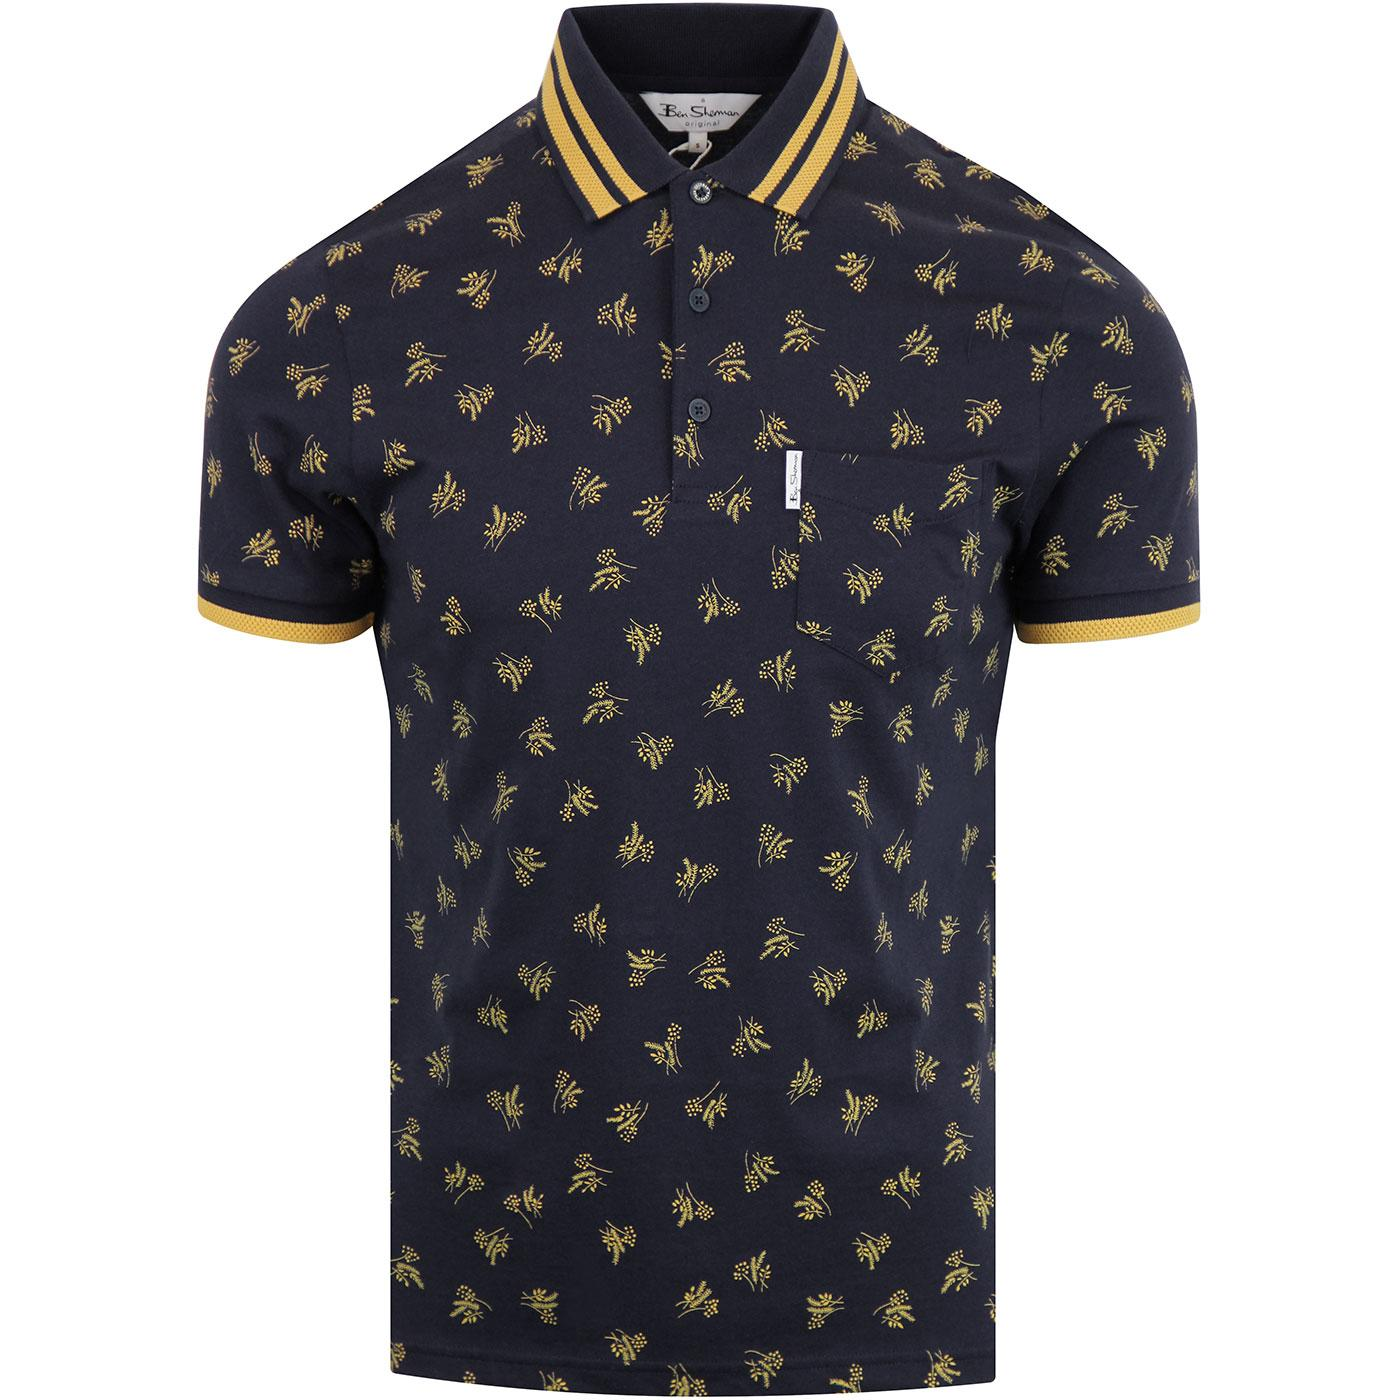 Ben Sherman Retro Mod Tipped Archive 70s Floral Polo Top